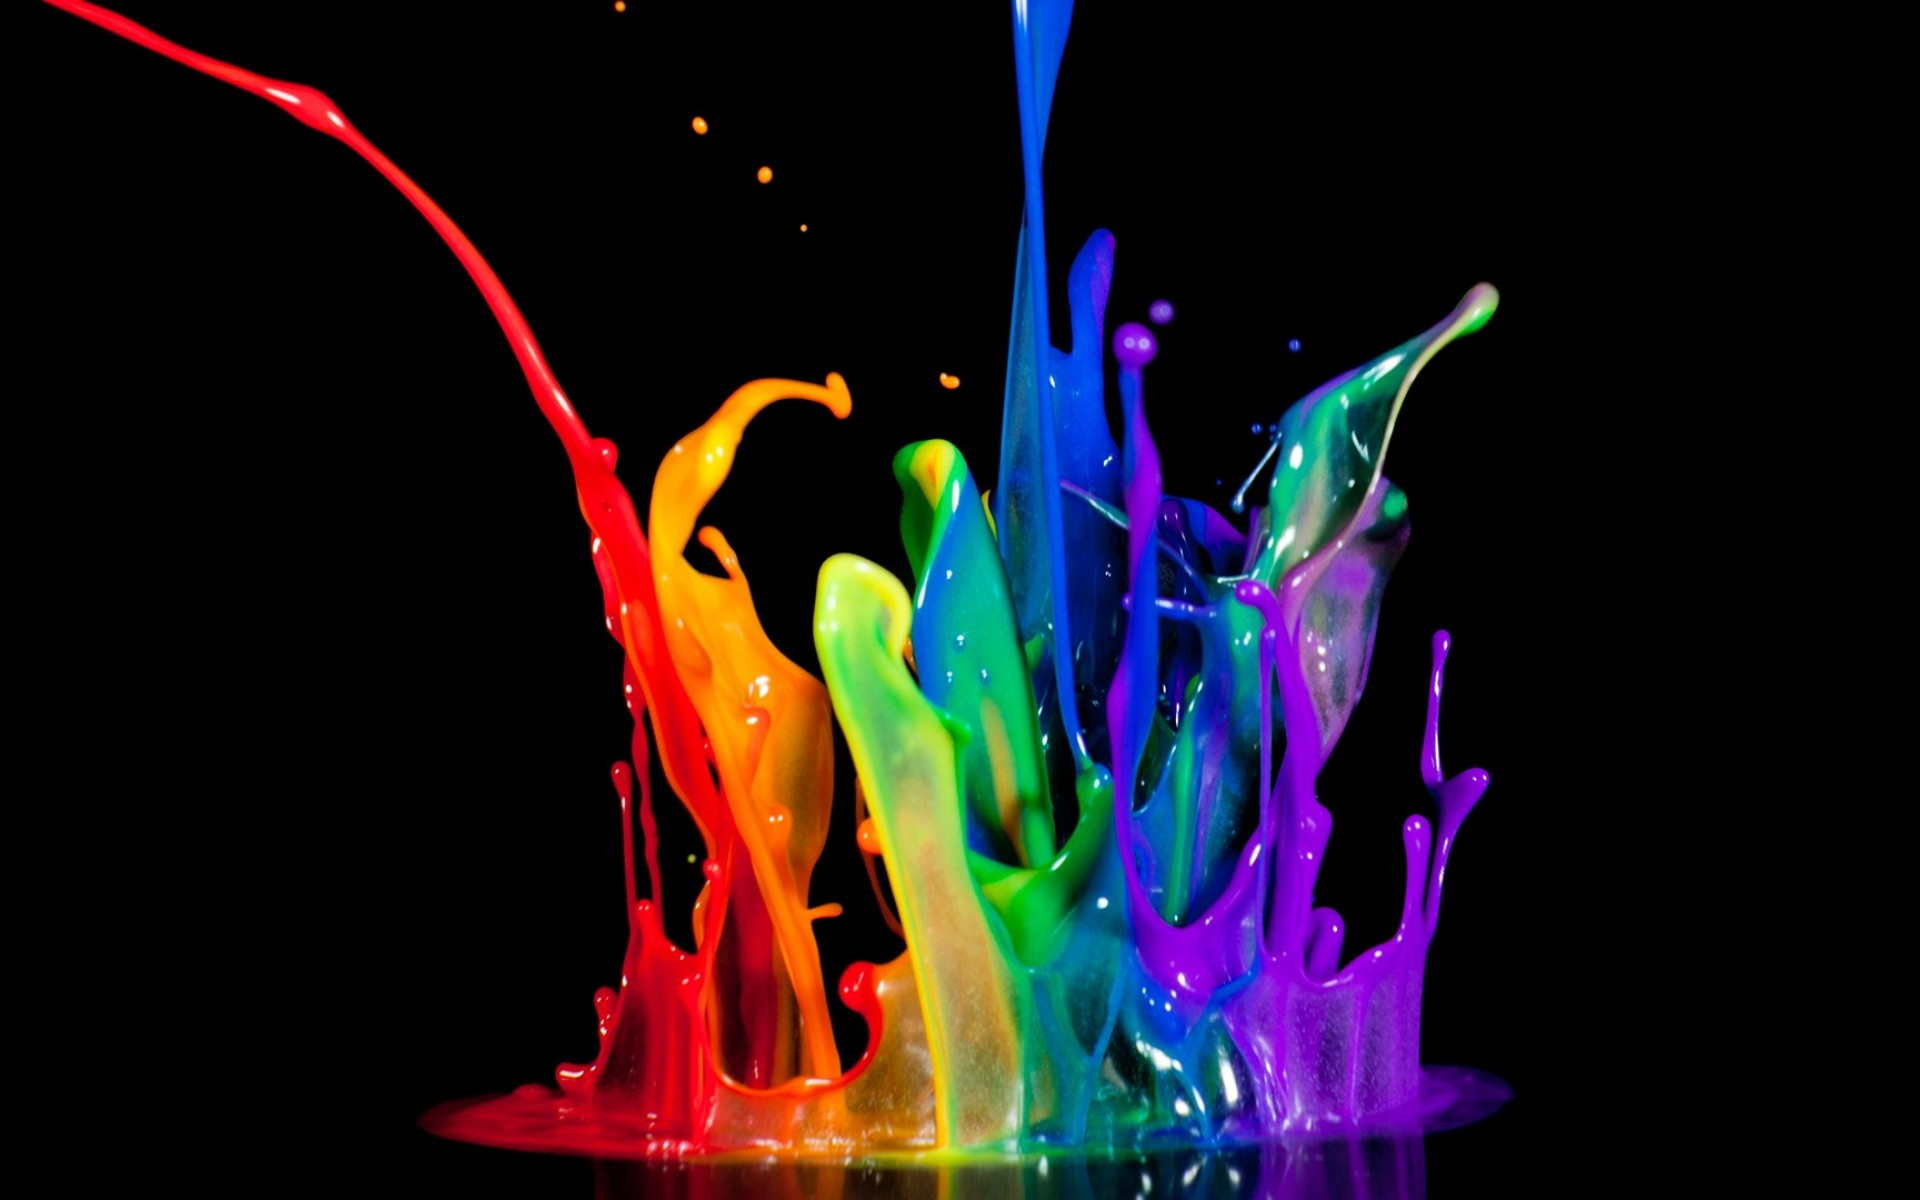 Multi Abstract Colorful Free Hd Wallpaper for Desktop and Mobiles